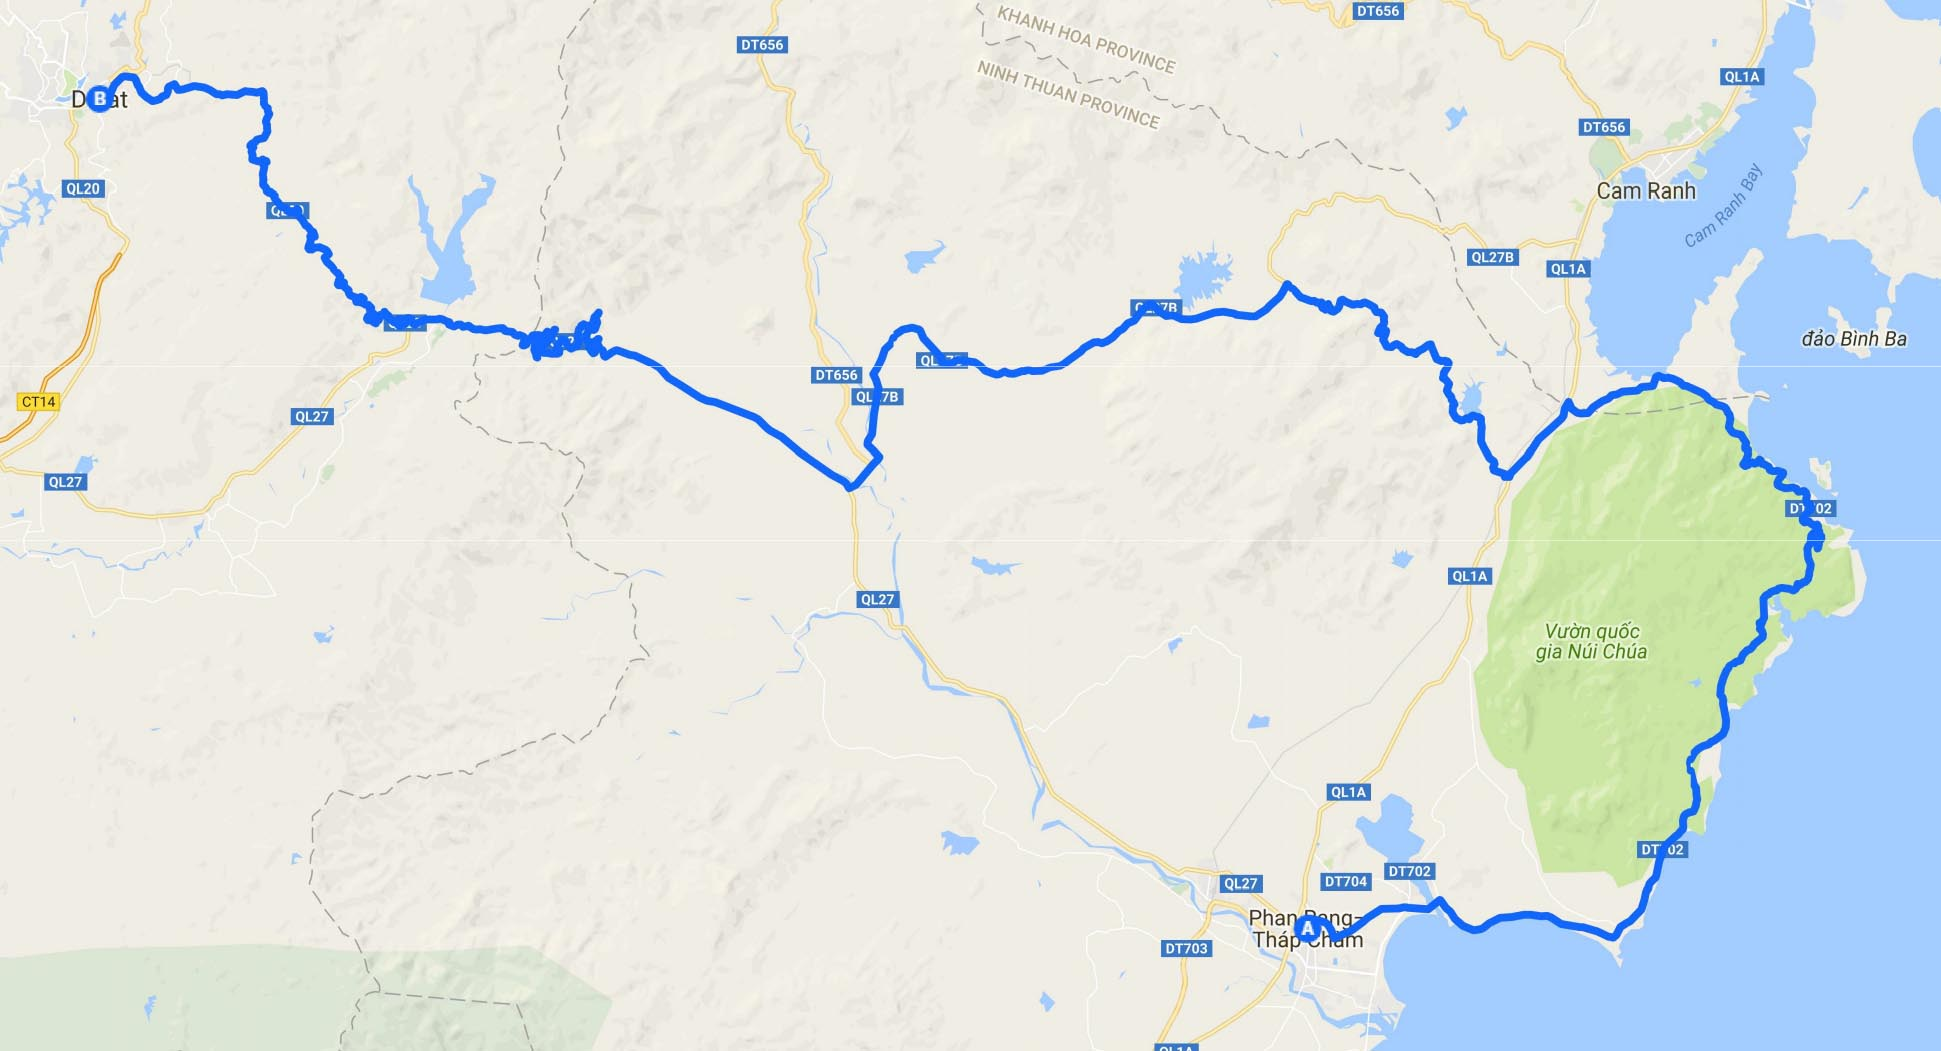 Phan Rang Vietnam Map.Vietnam Routes And Maps By Motorbike